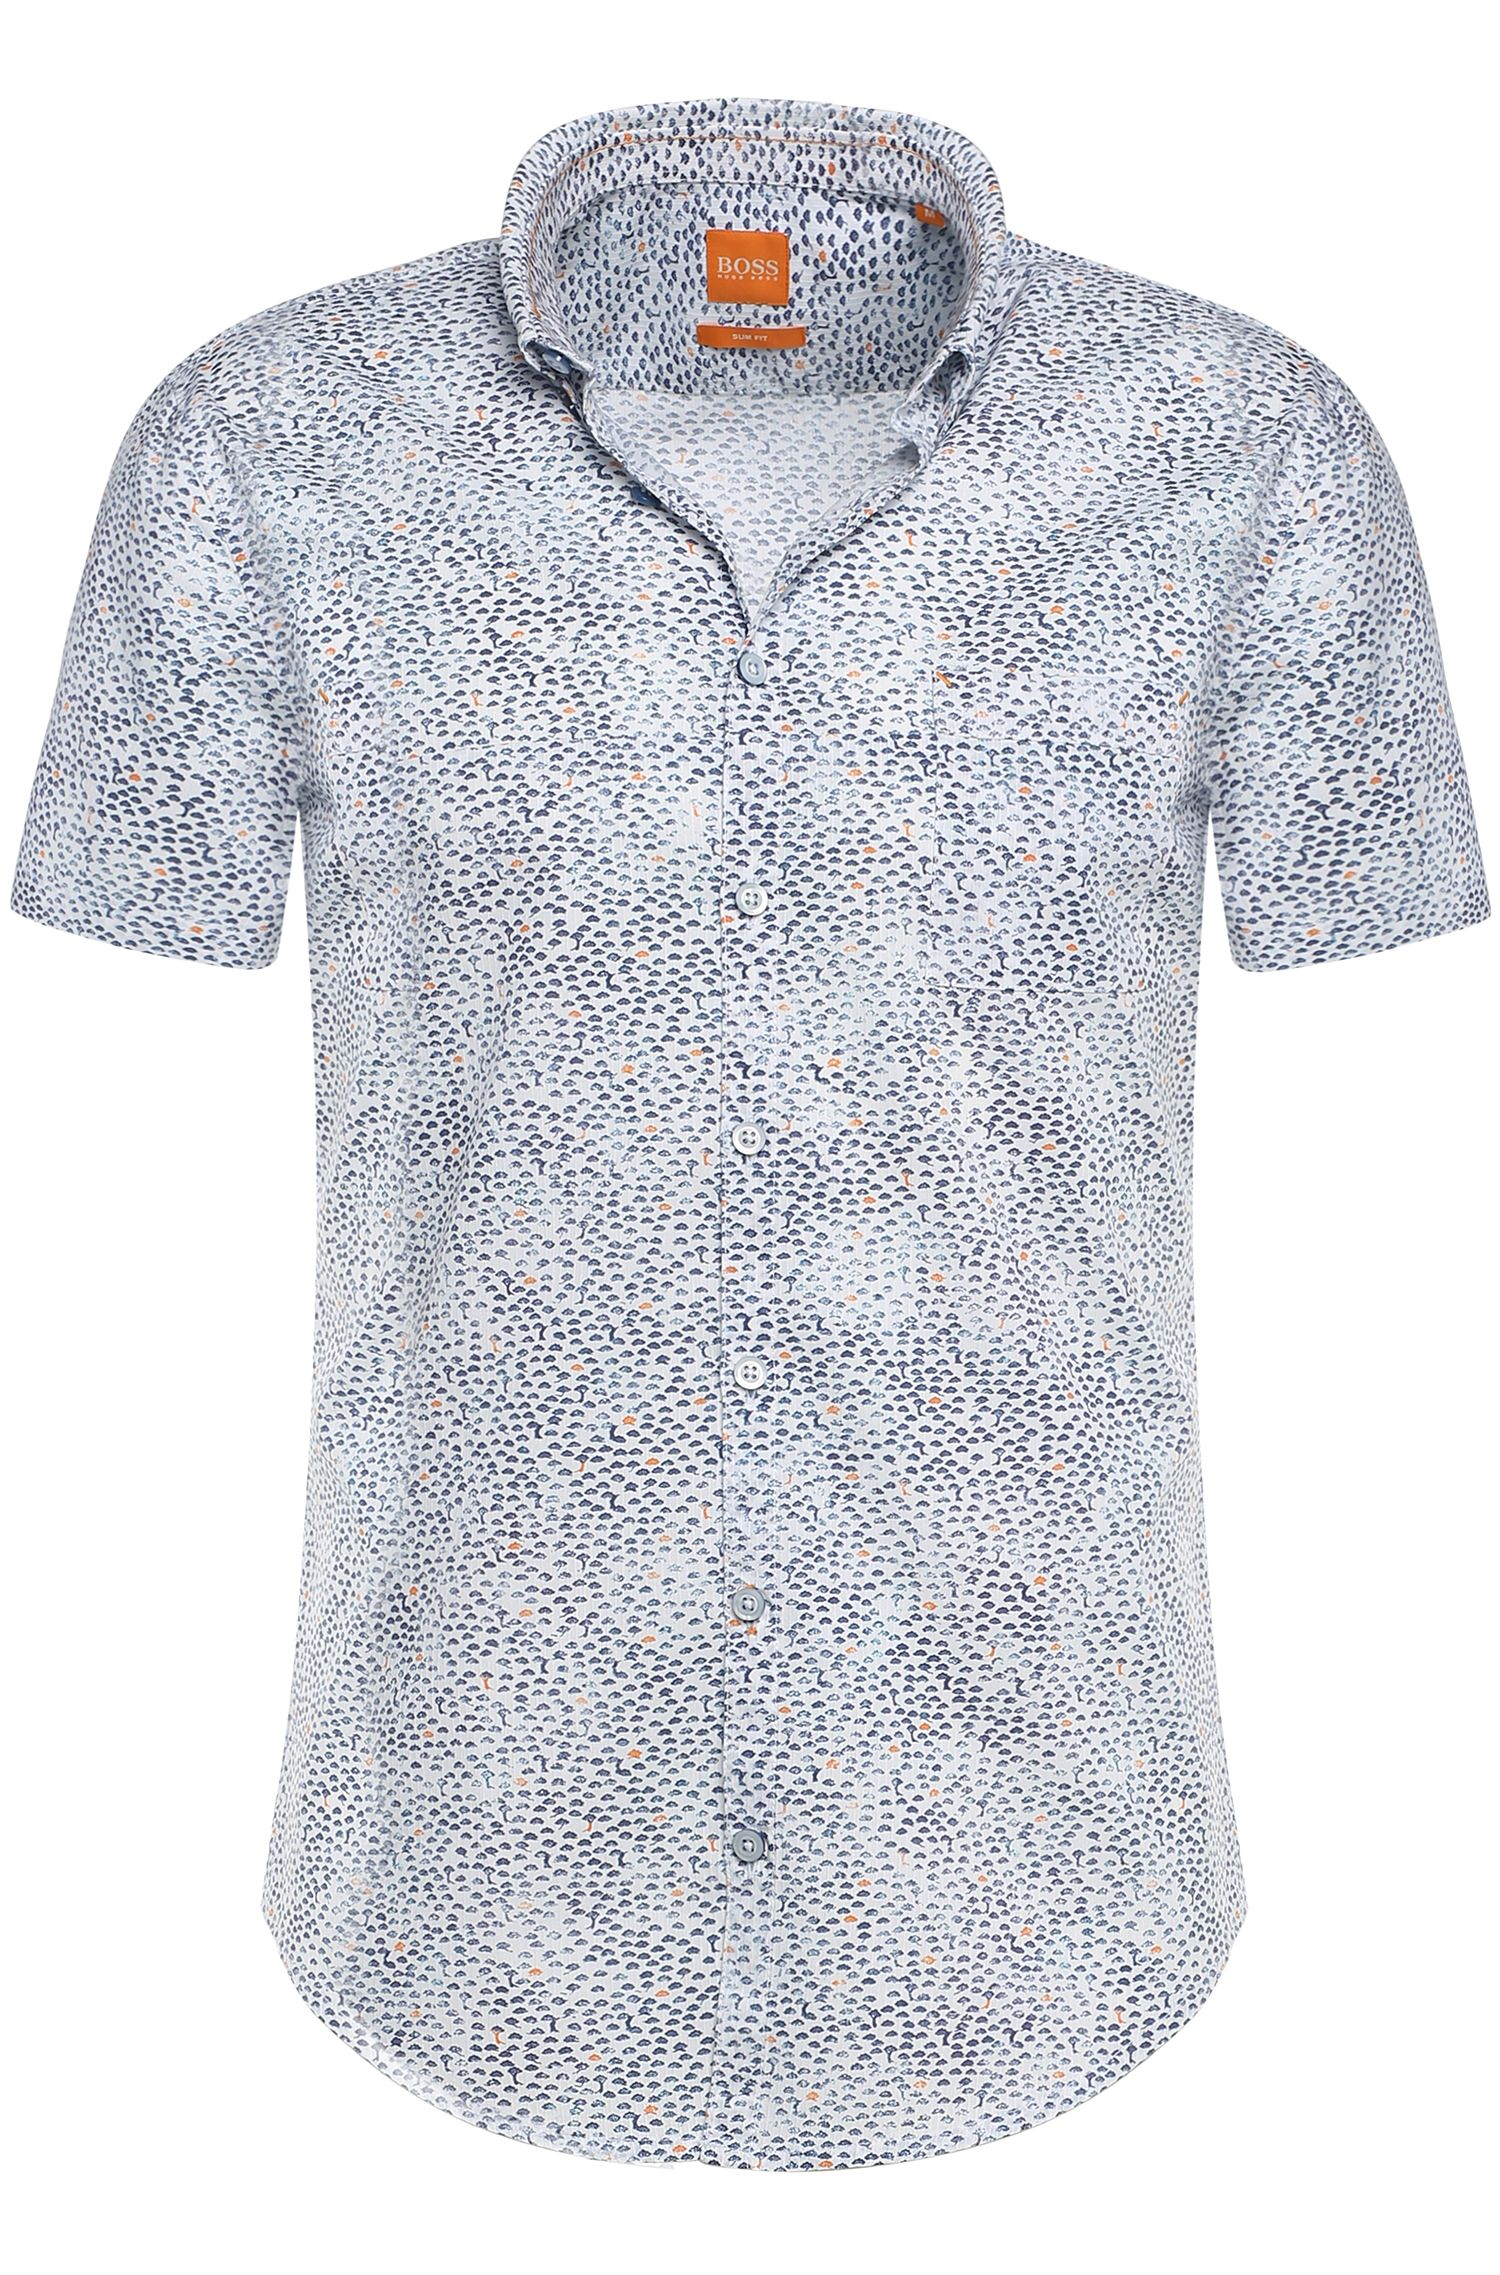 'ErollesE' | Slim Fit, Cotton Printed Button Down Shirt